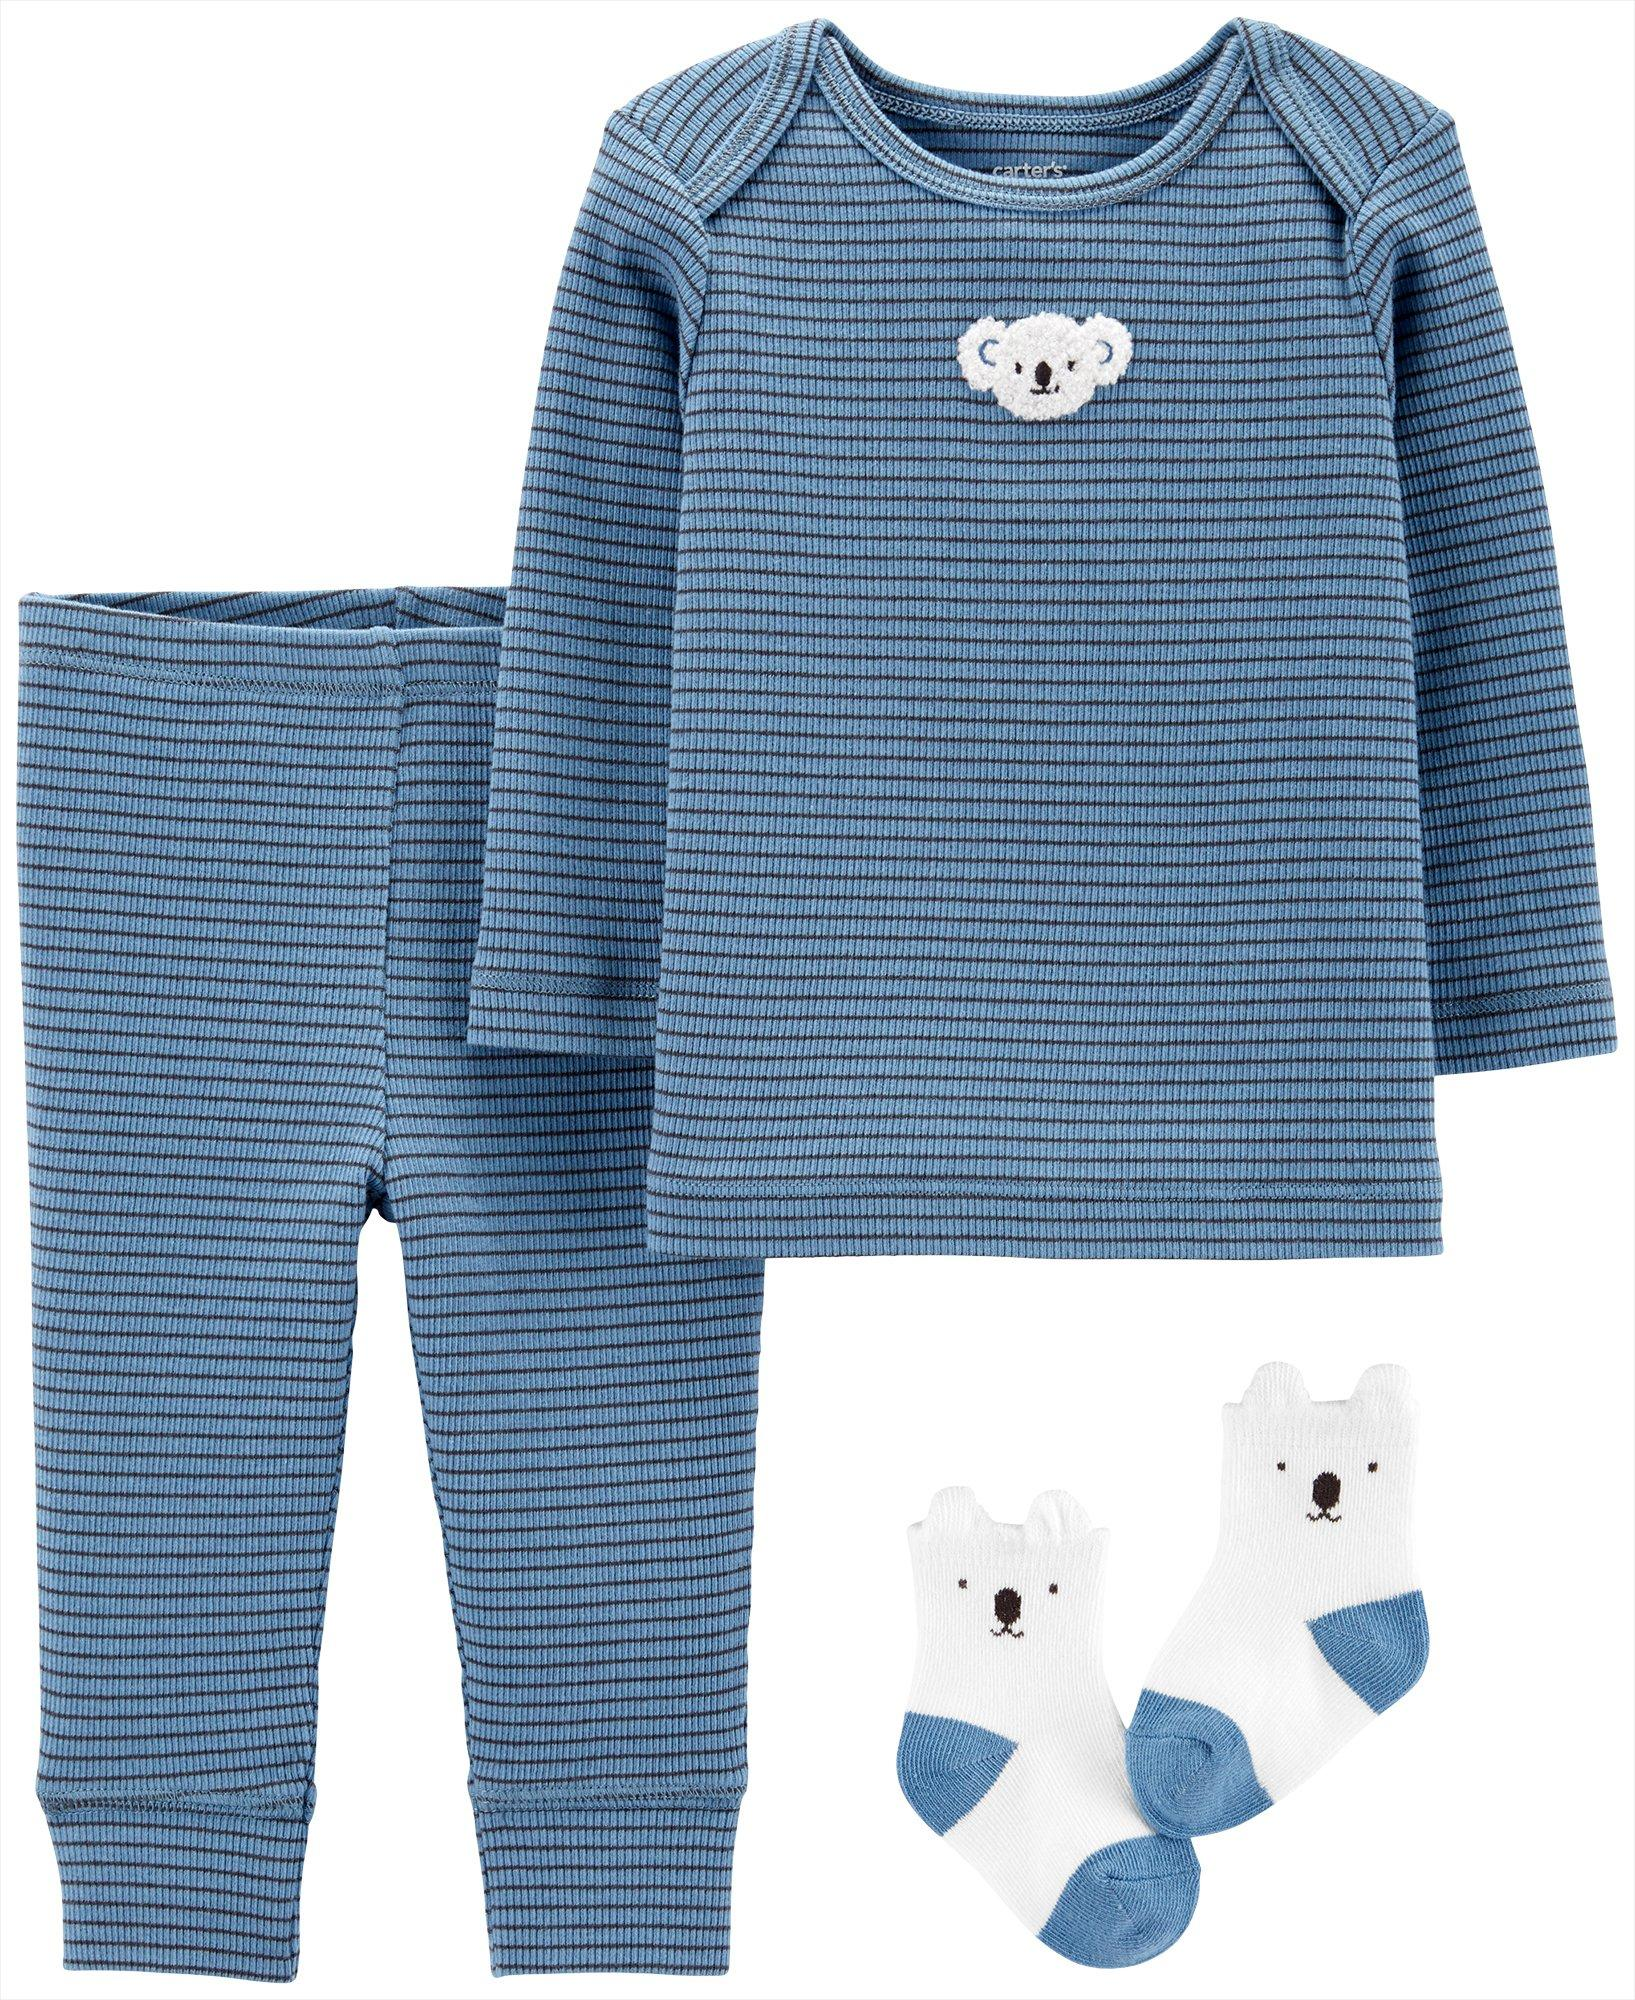 Little Peanut Cardigan Layette Set Carters Baby Boys 3-pc